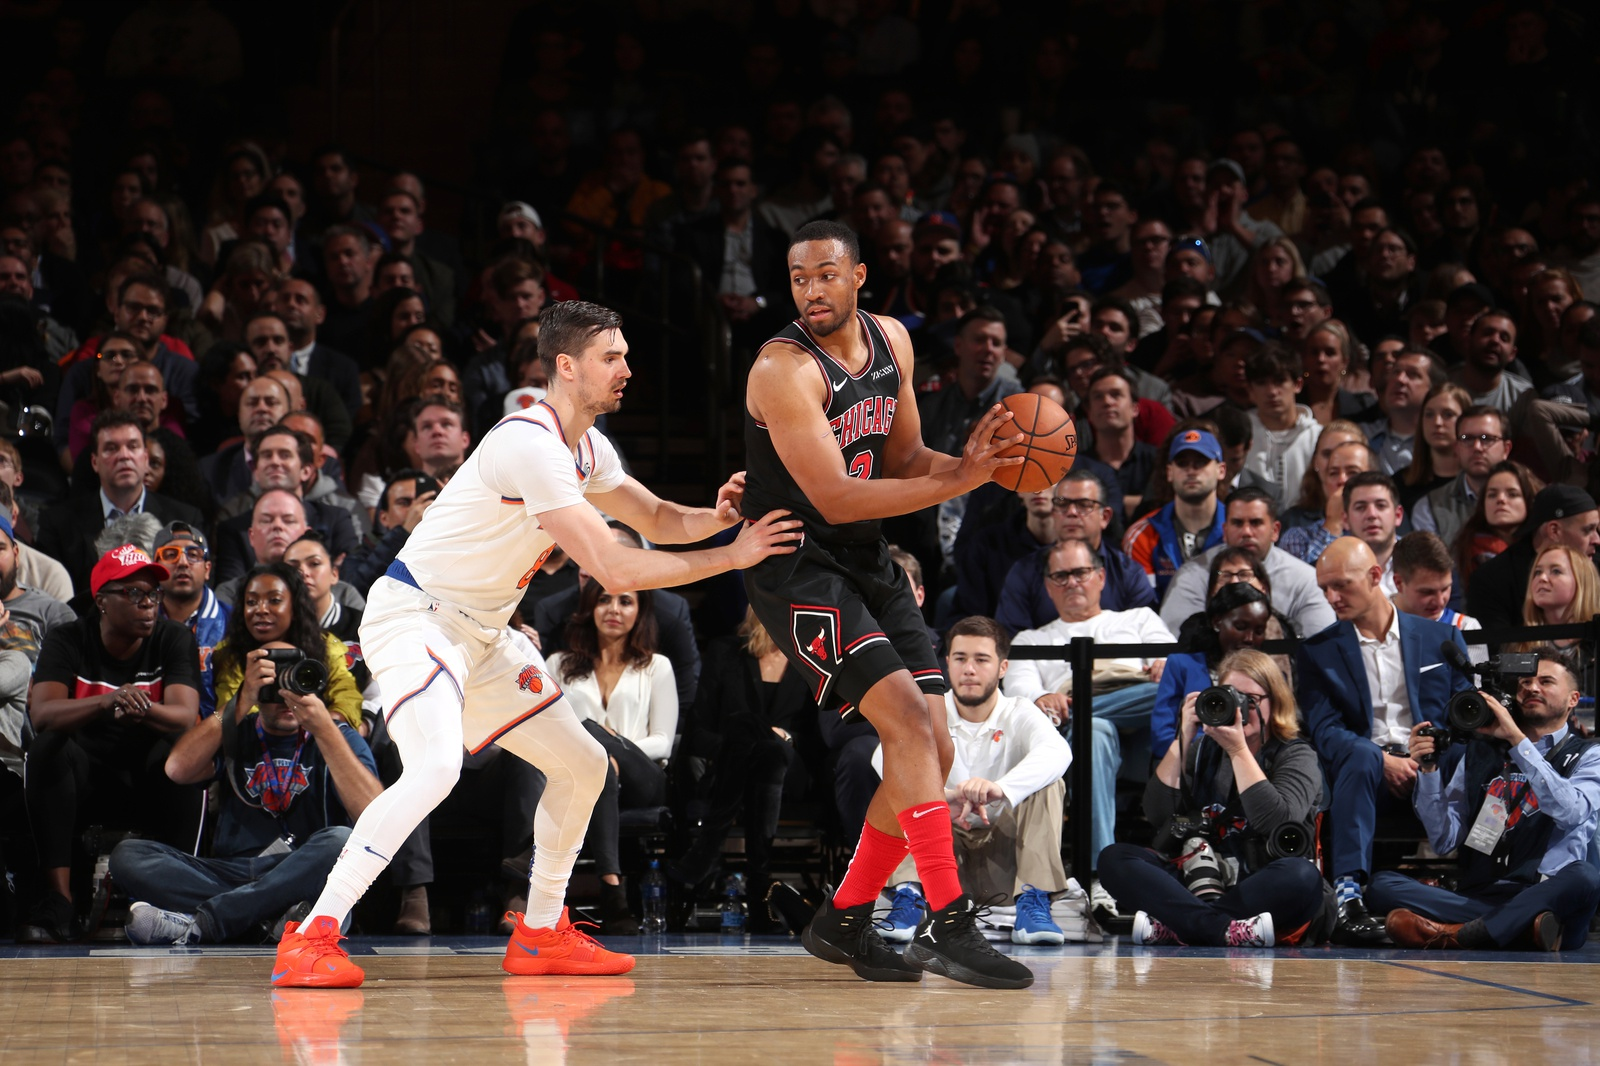 Jabari Parker #2 of the Chicago Bulls handles the ball against the New York Knicks on November 5, 2018 at Madison Square Garden in New York City, New York.